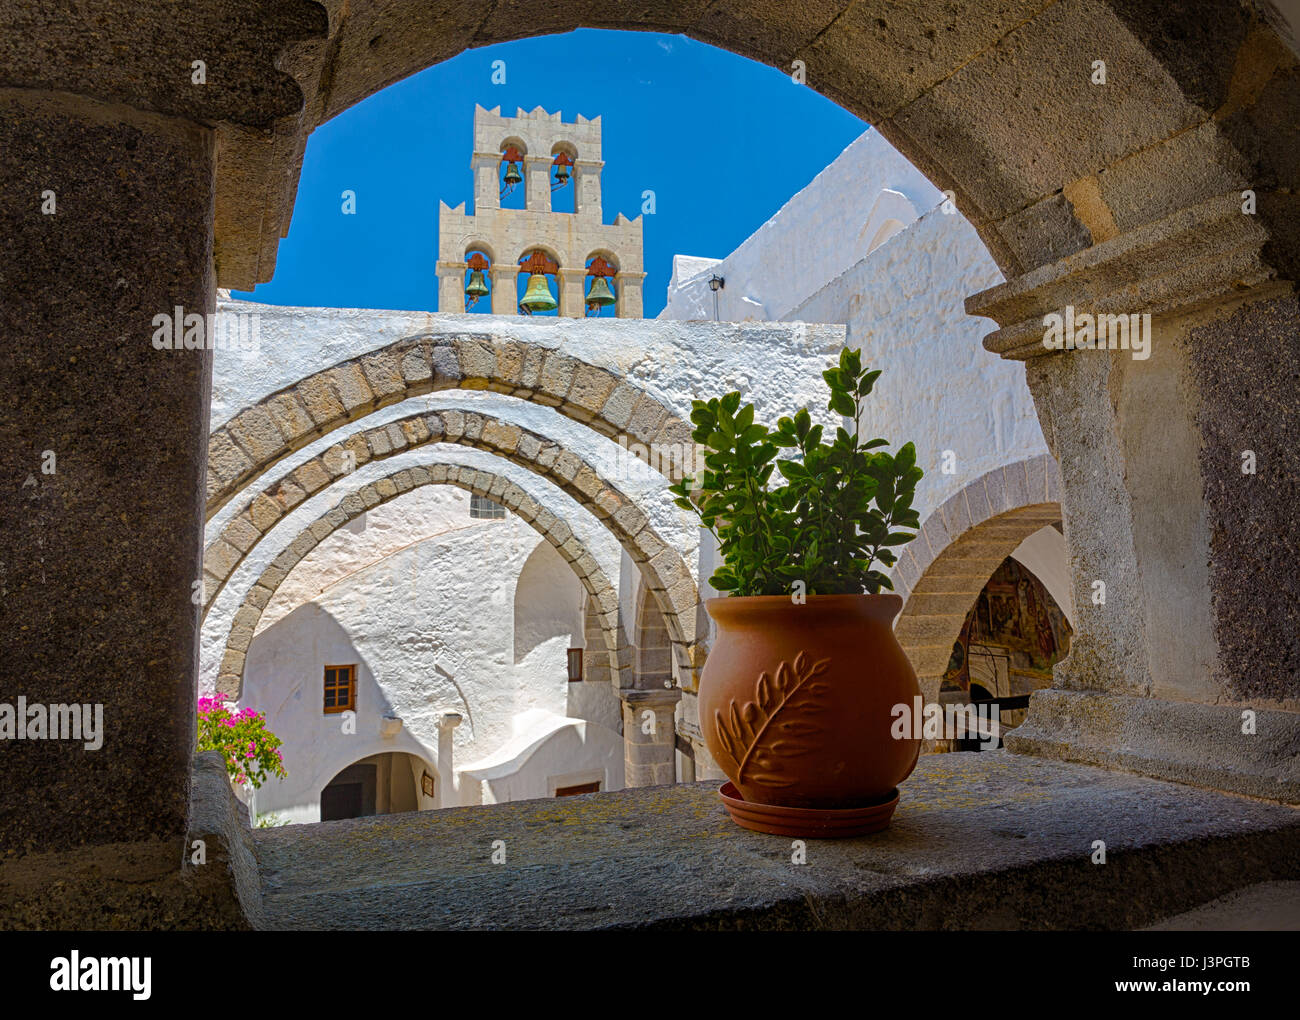 Monastery of Saint John the Theologian on the Greek island of Patmos. Monastery constructed in the 11th century, - Stock Image